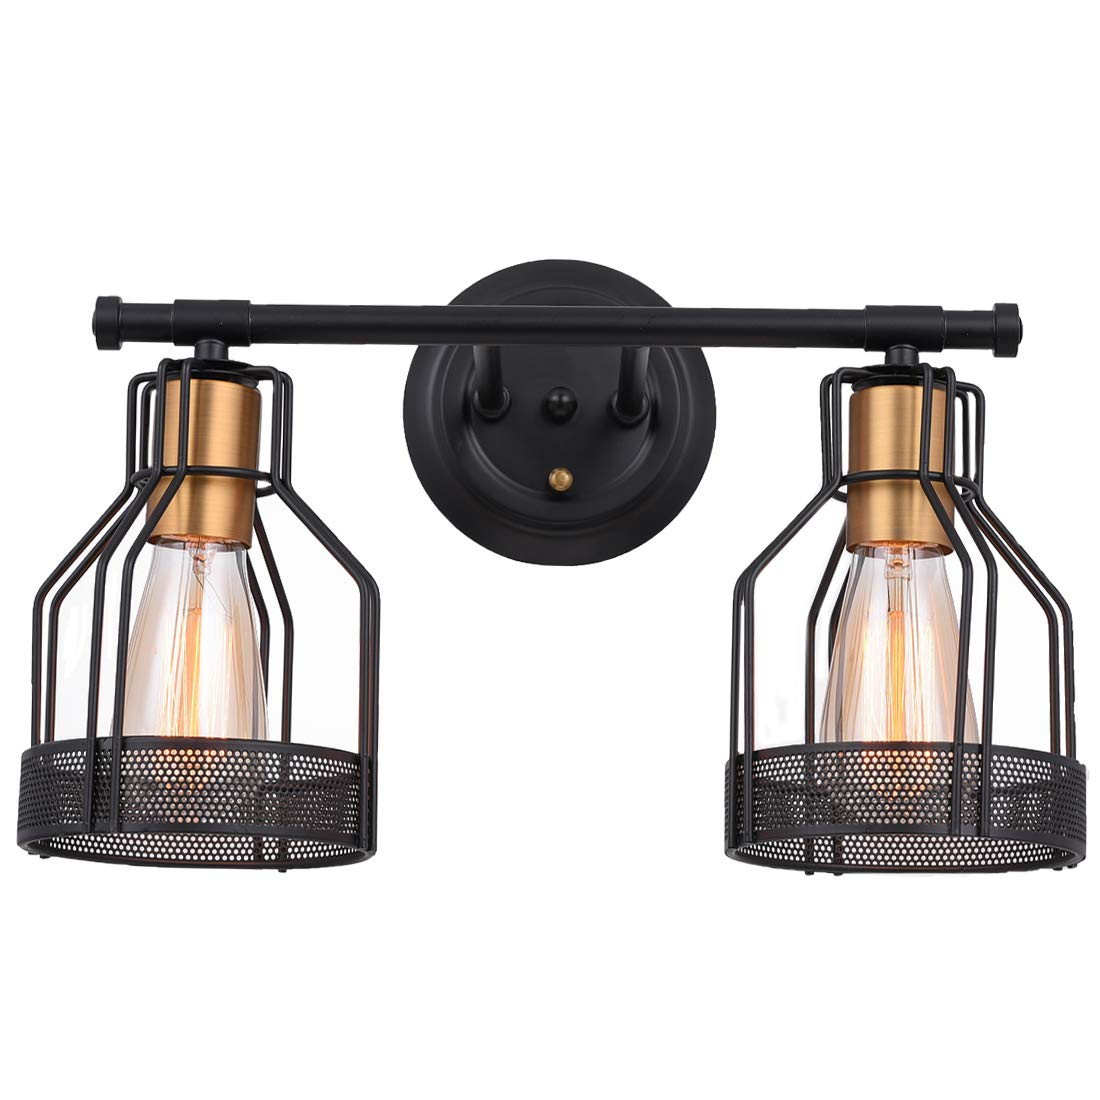 Pauwer 2 Light Bathroom Vanity Light Industrial Metal Wire Cage Wall Sconce Edison Vintage Wall Light Fixture for Bathroom (2-Light Vanity Light) by Pauwer